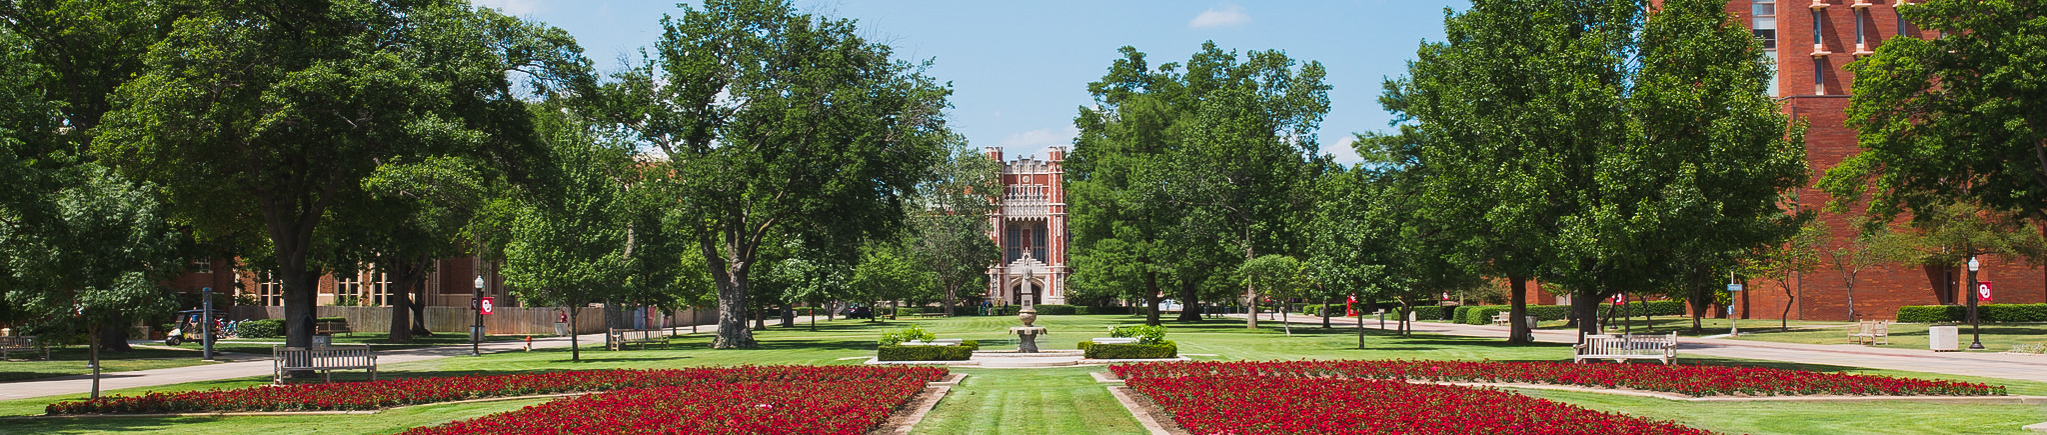 South Oval